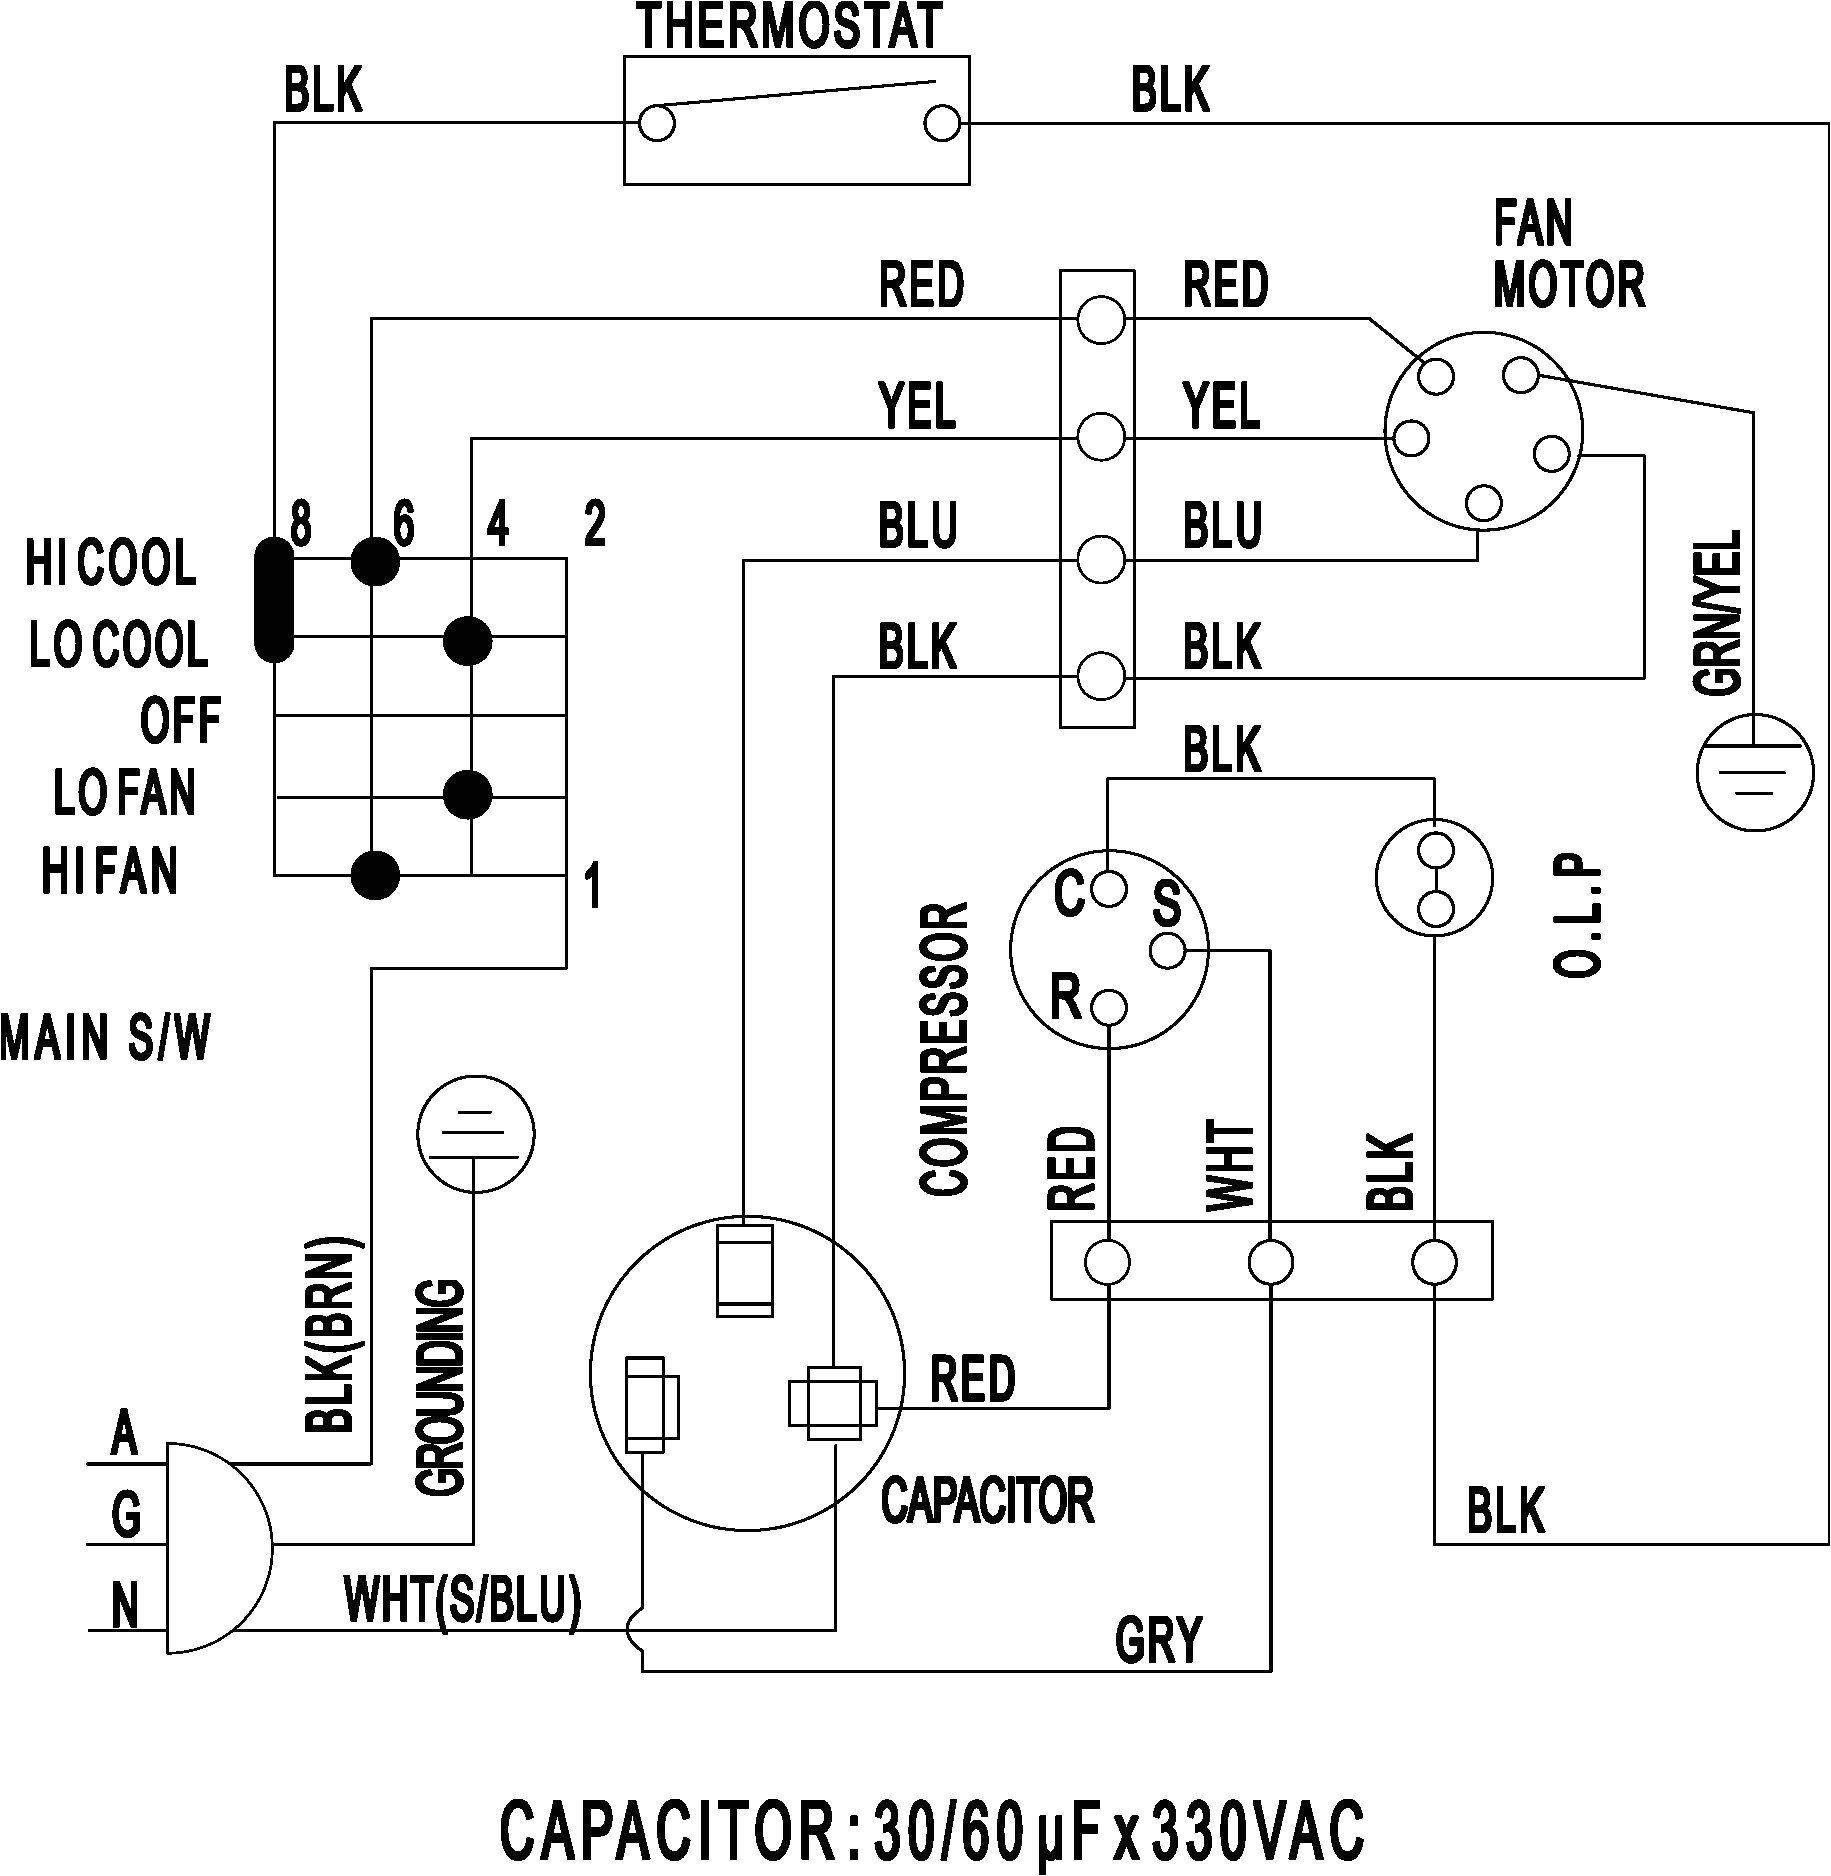 ac unit wiring diagram wiring diagram database mix split air conditioner wiring diagram sample